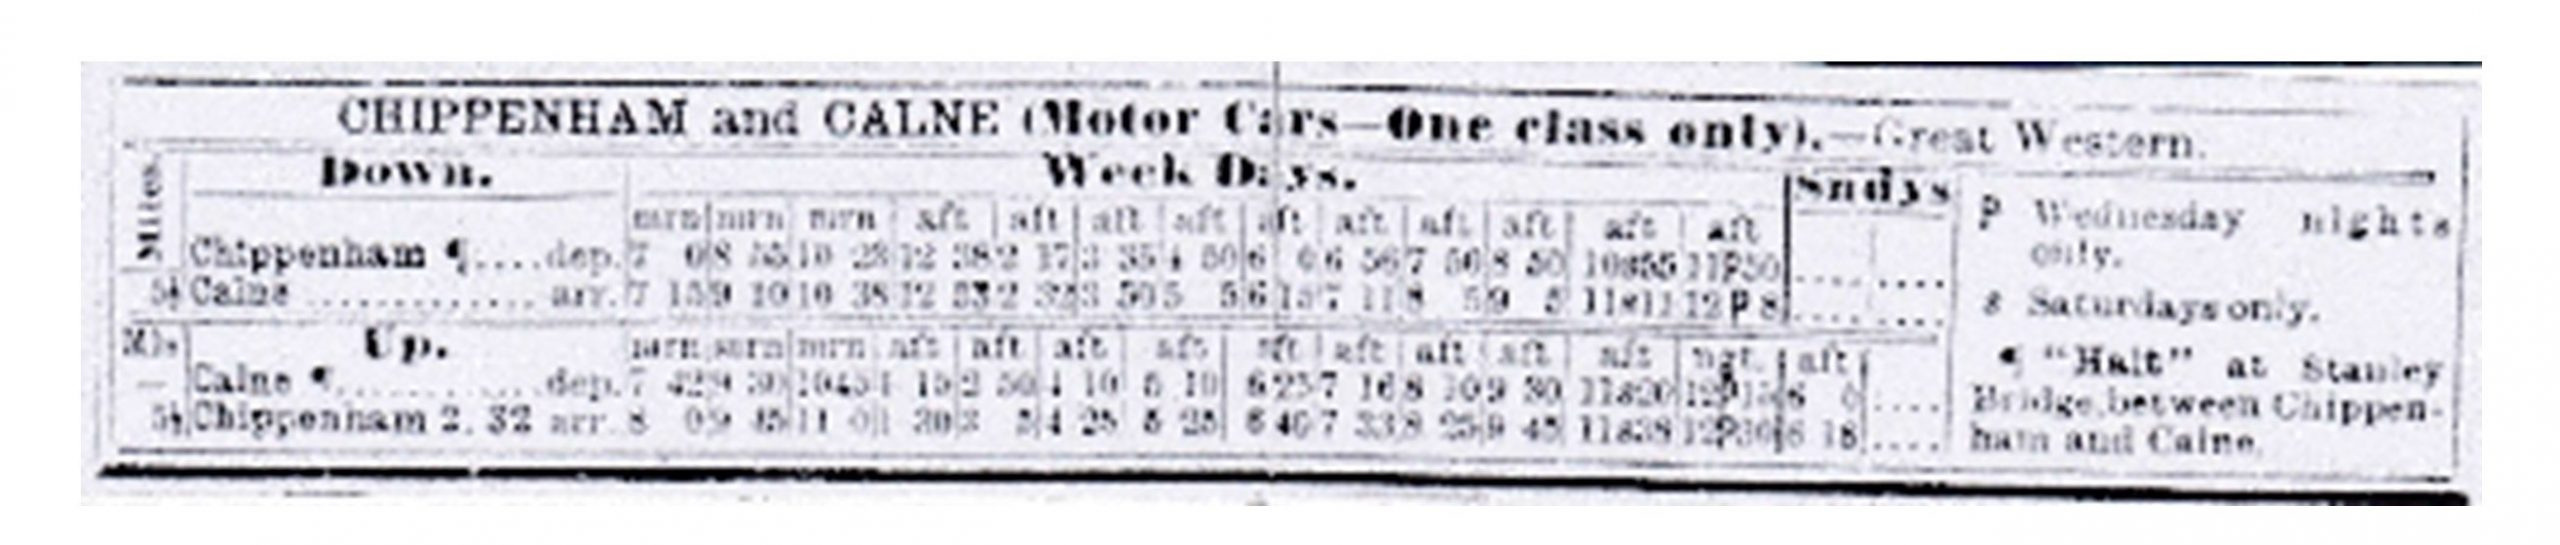 Printed timetable for Chippenham and Calne showing times for Up and Down on Weekdays and Sunday